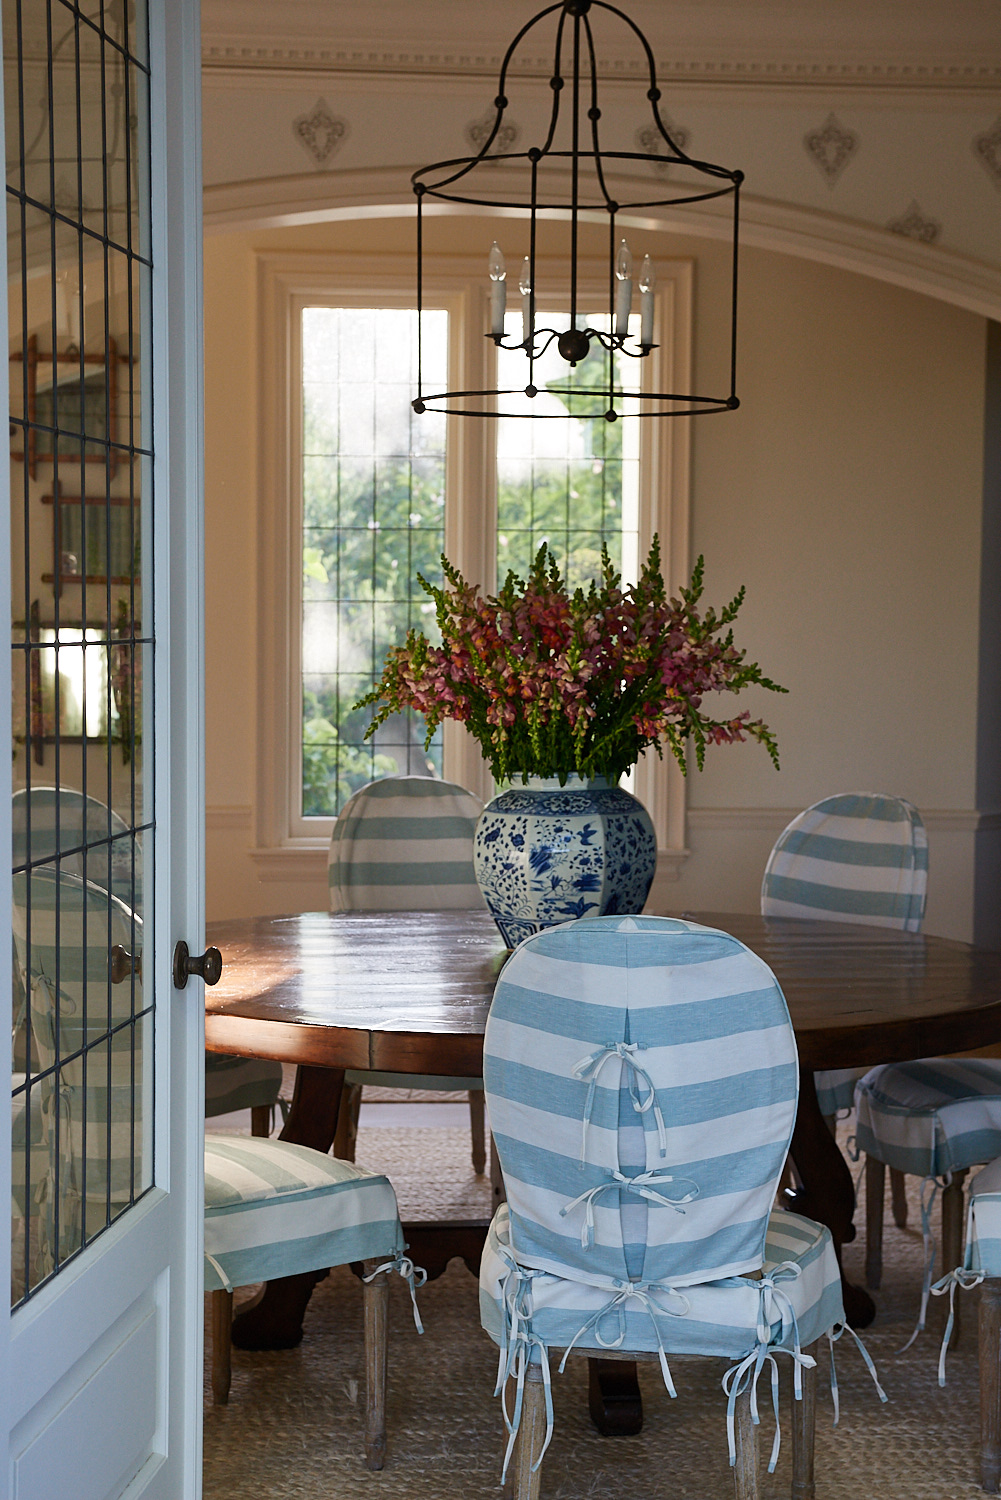 Dining room chairs with striped fabric coverings